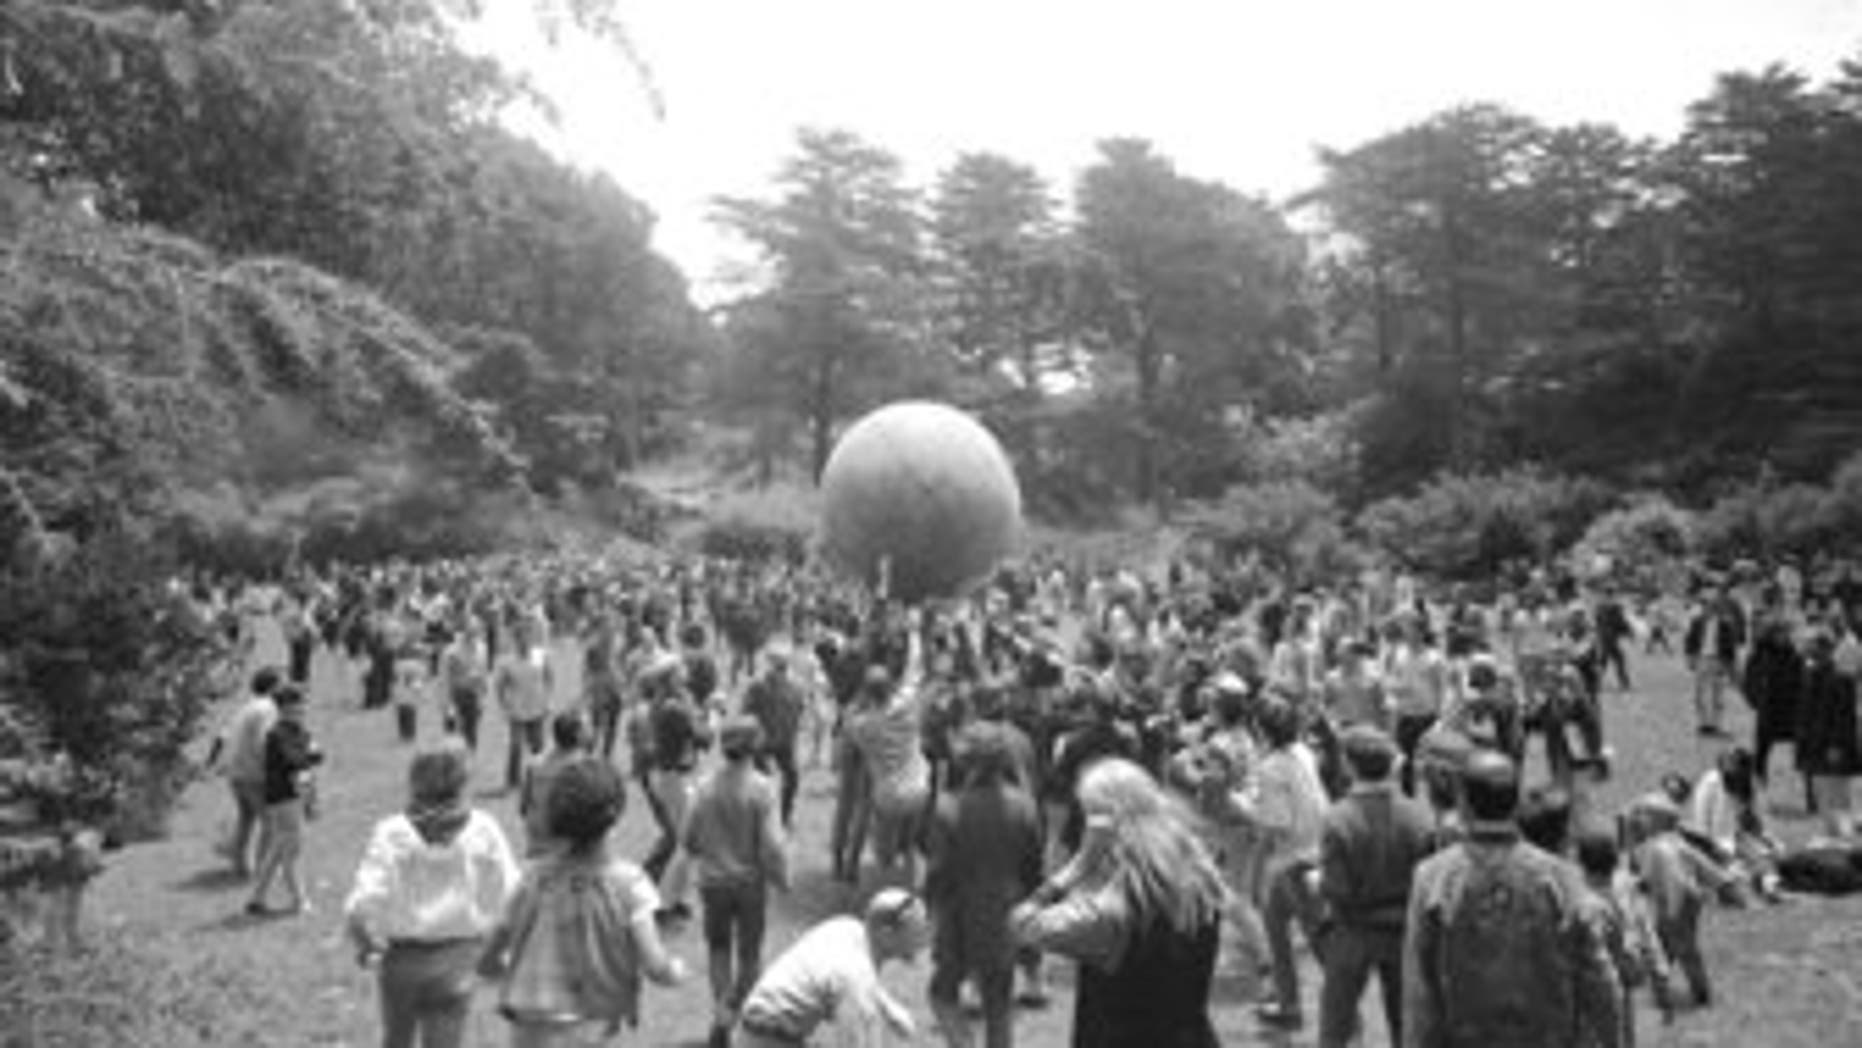 """People celebrating the summer solstice on June 21, 1967, carry a large ball, painted to represent a world globe, in the air during a gathering at Golden Gate Park in San Francisco on Day One of """"Summer of Love."""" (AP Photo/File)"""